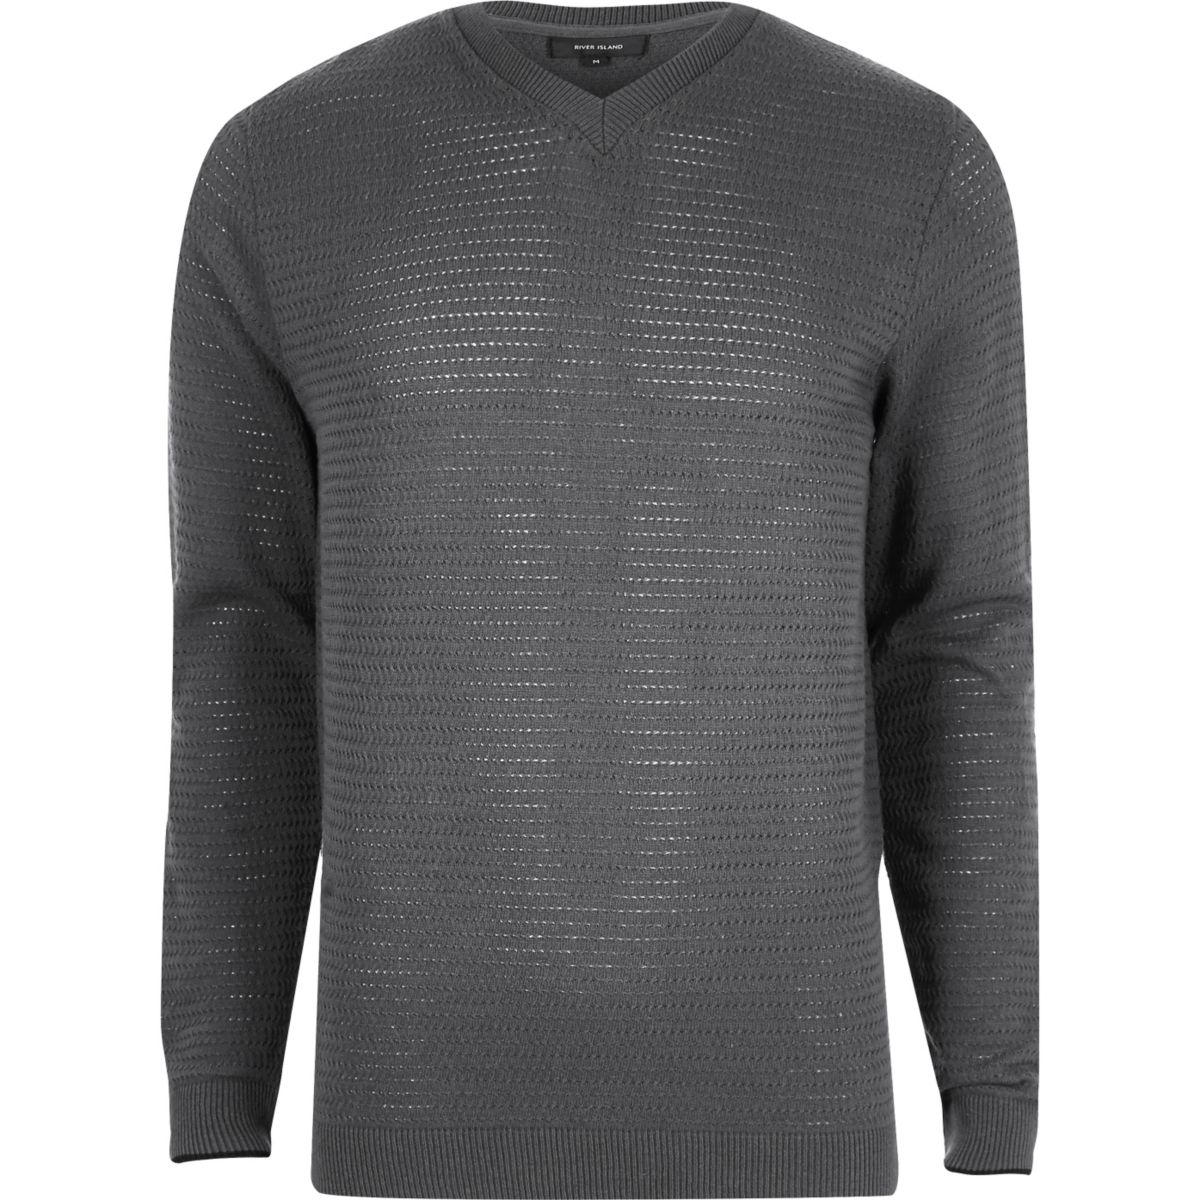 Grey textured knit V neck slim fit sweater